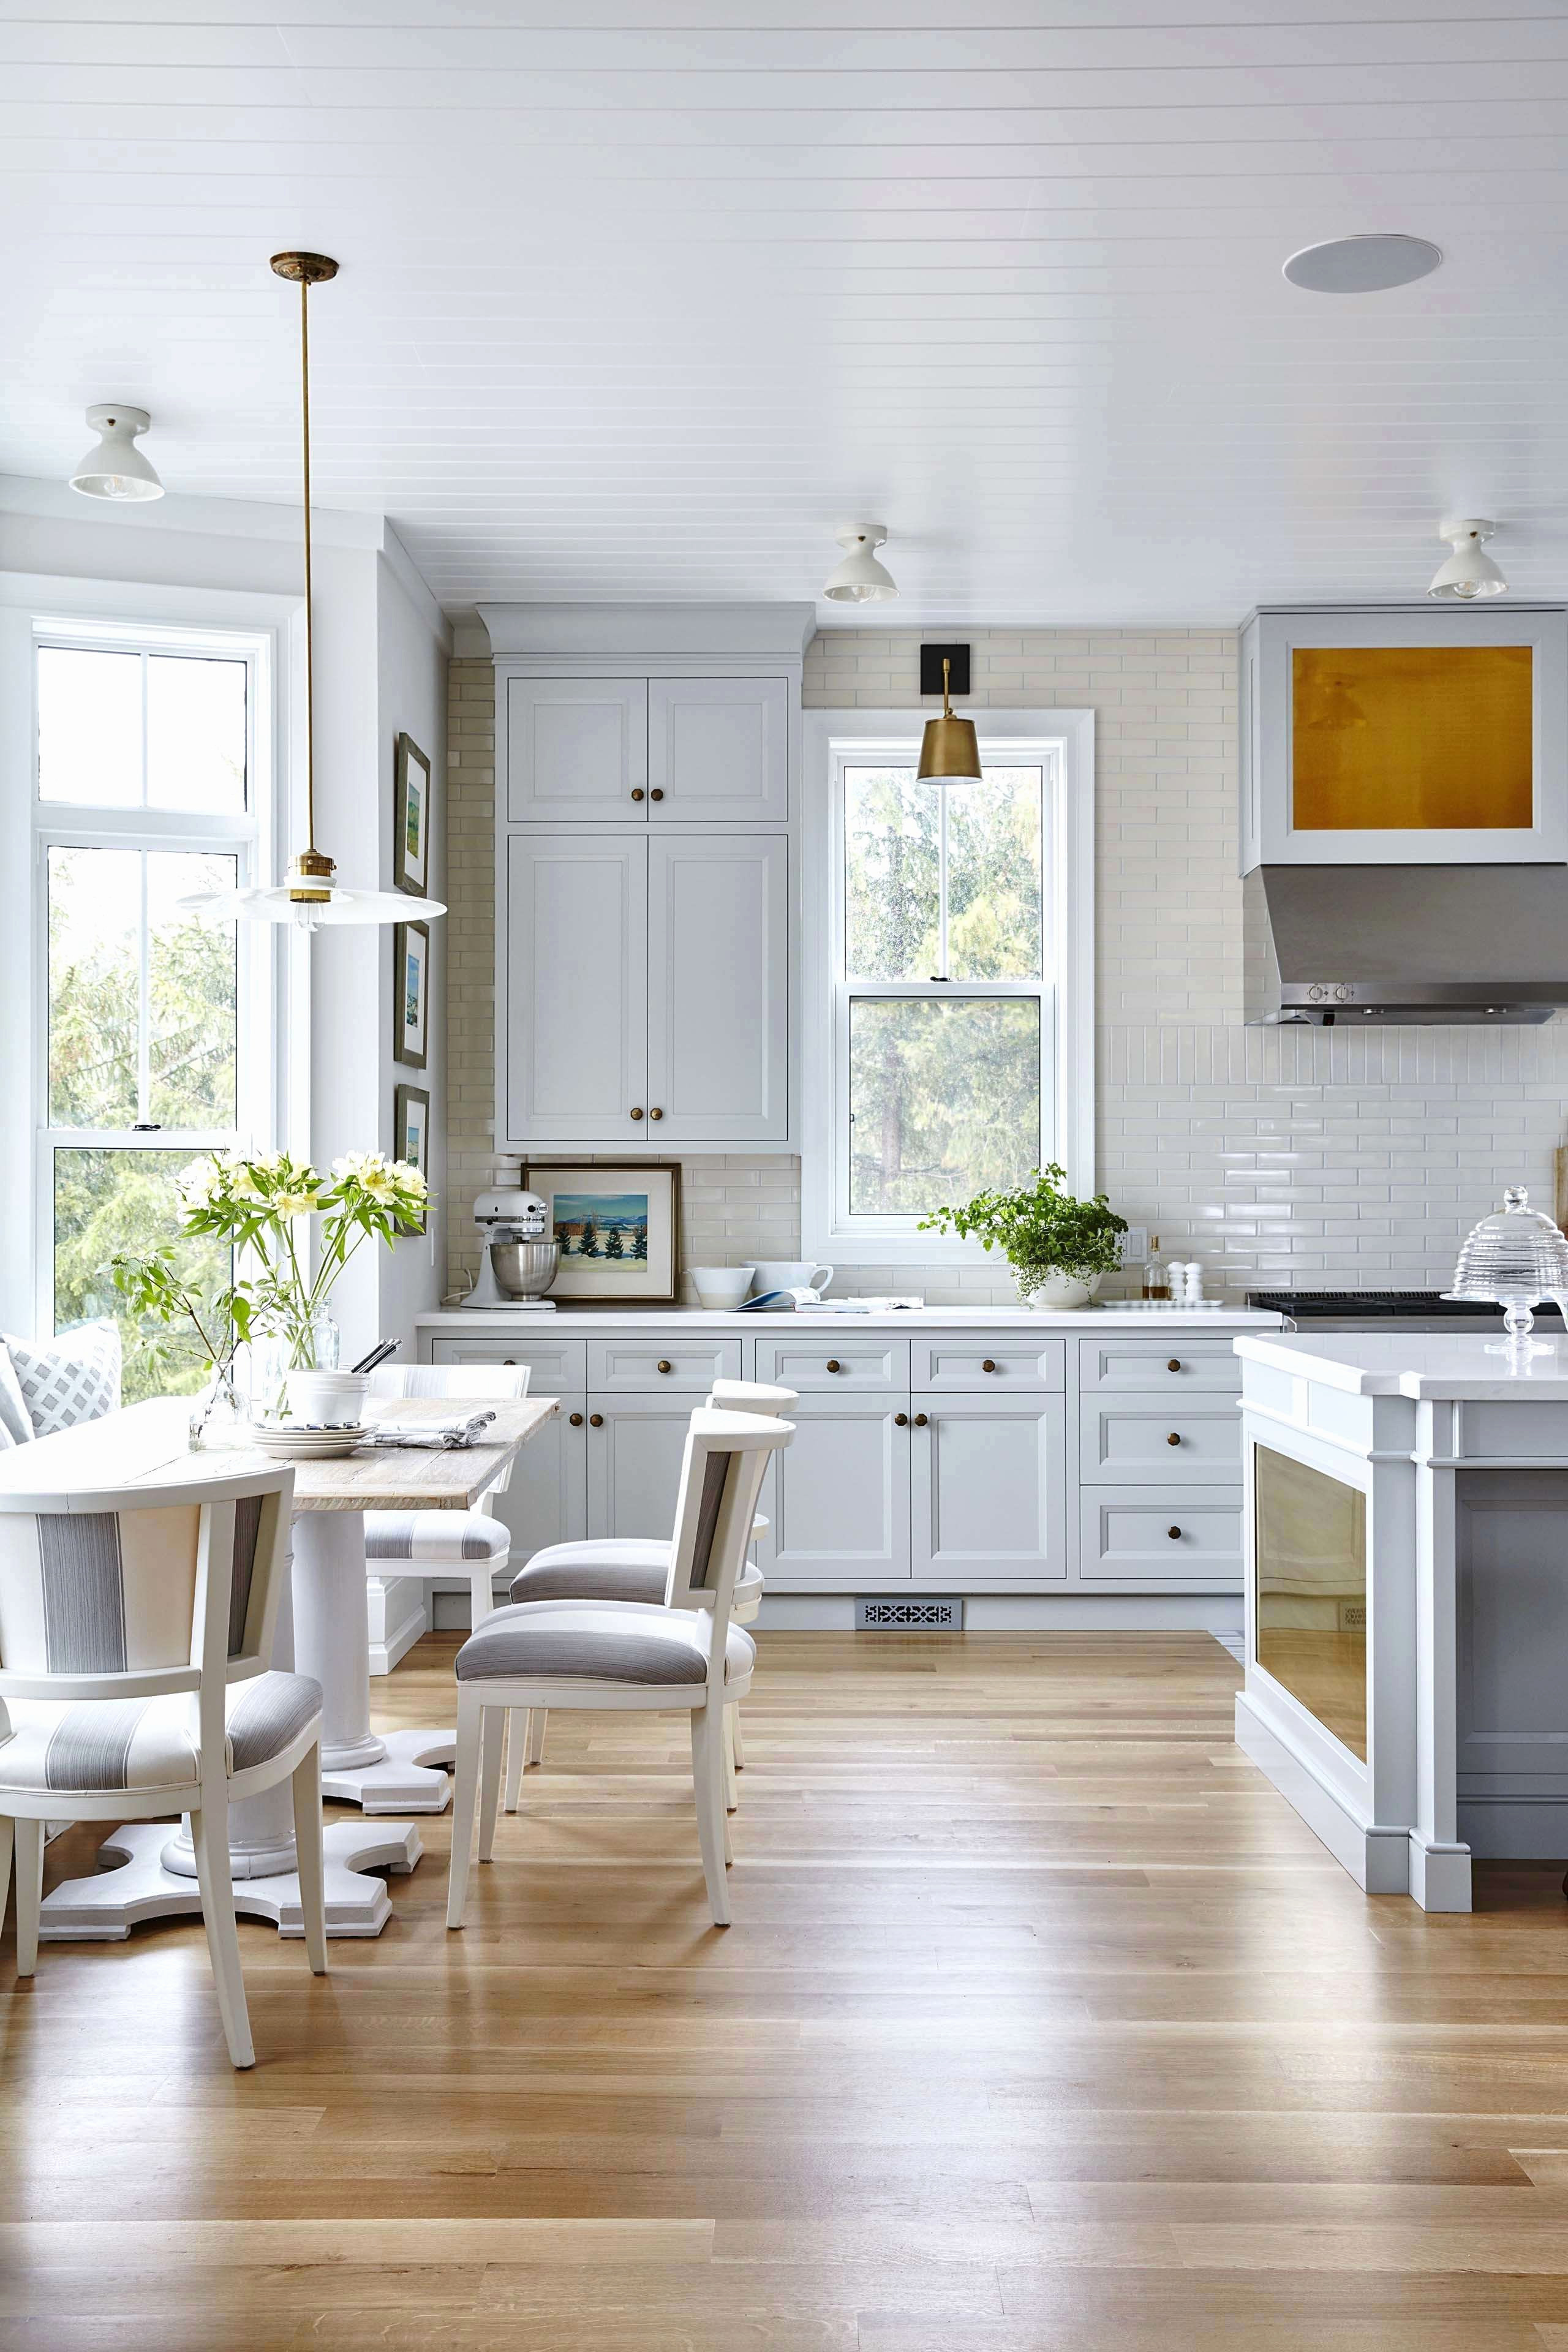 discount hardwood floors and molding los angeles of kitchen cabinets los angeles luxury how much is kitchen cabinet regarding kitchen cabinets los angeles awesome 30 awesome small kitchen design layout trinitycountyfoodbank